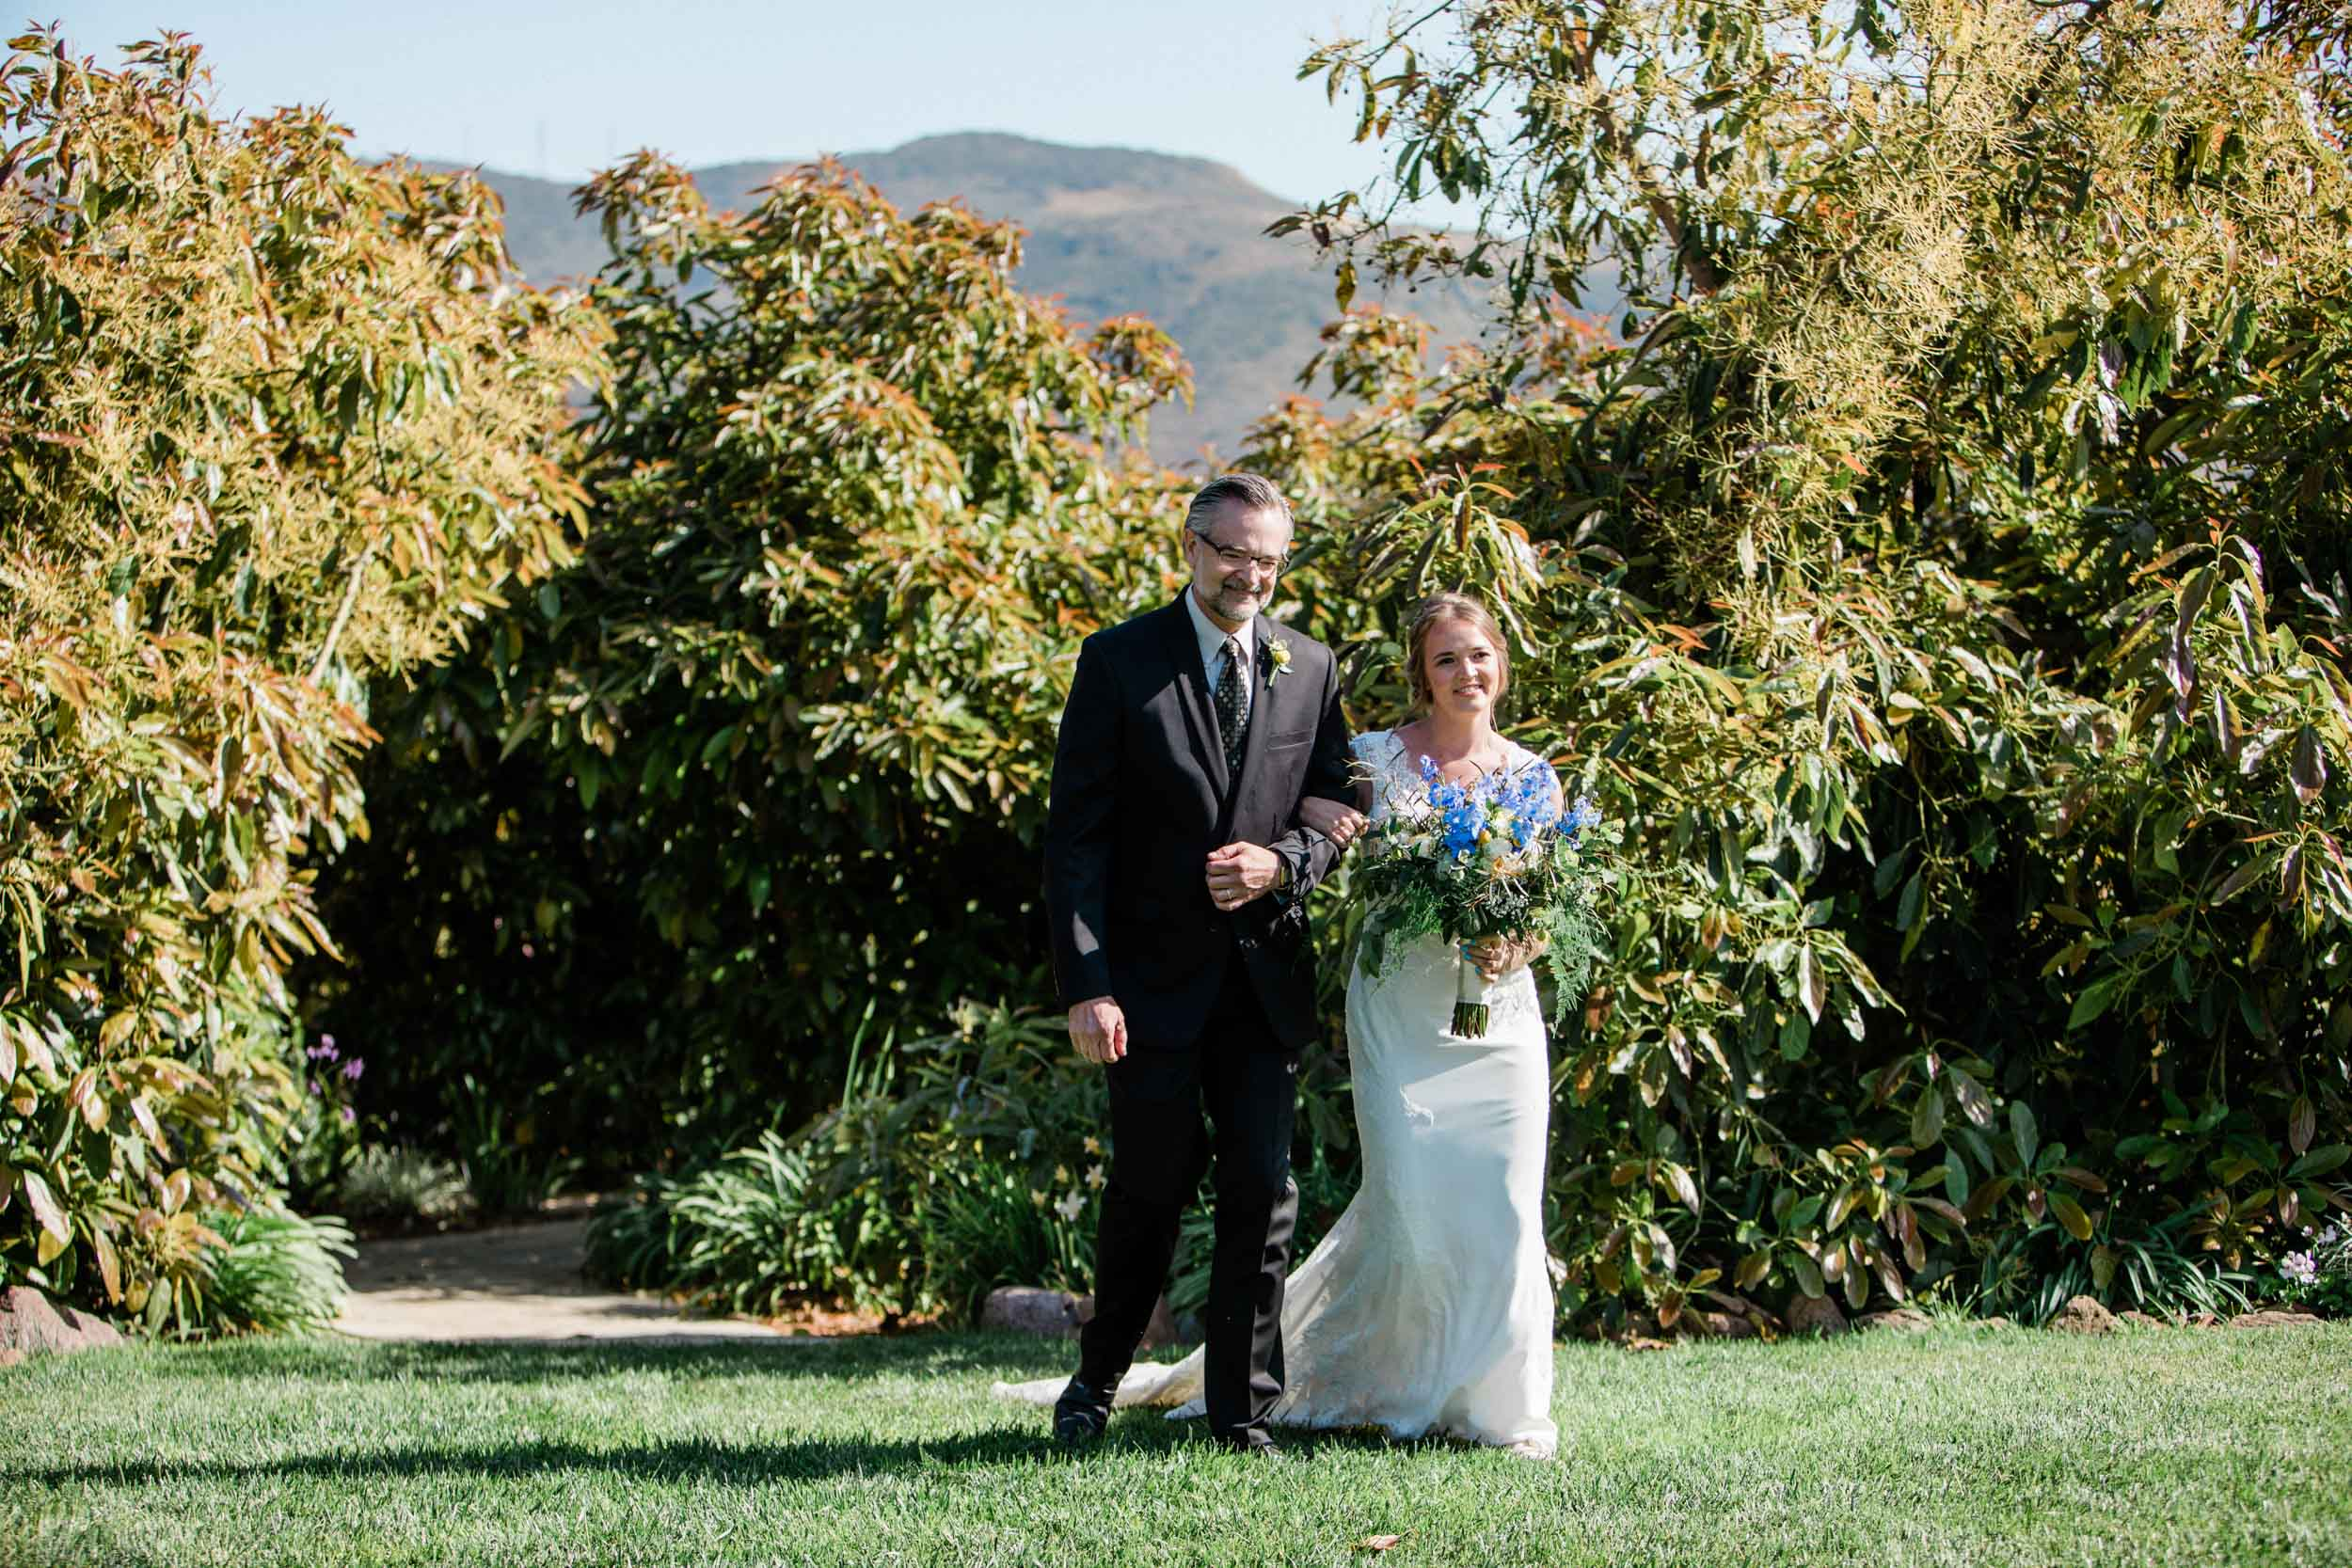 BKM-Photography-Gerry-Ranch-Southern-California-Wedding-0072.jpg